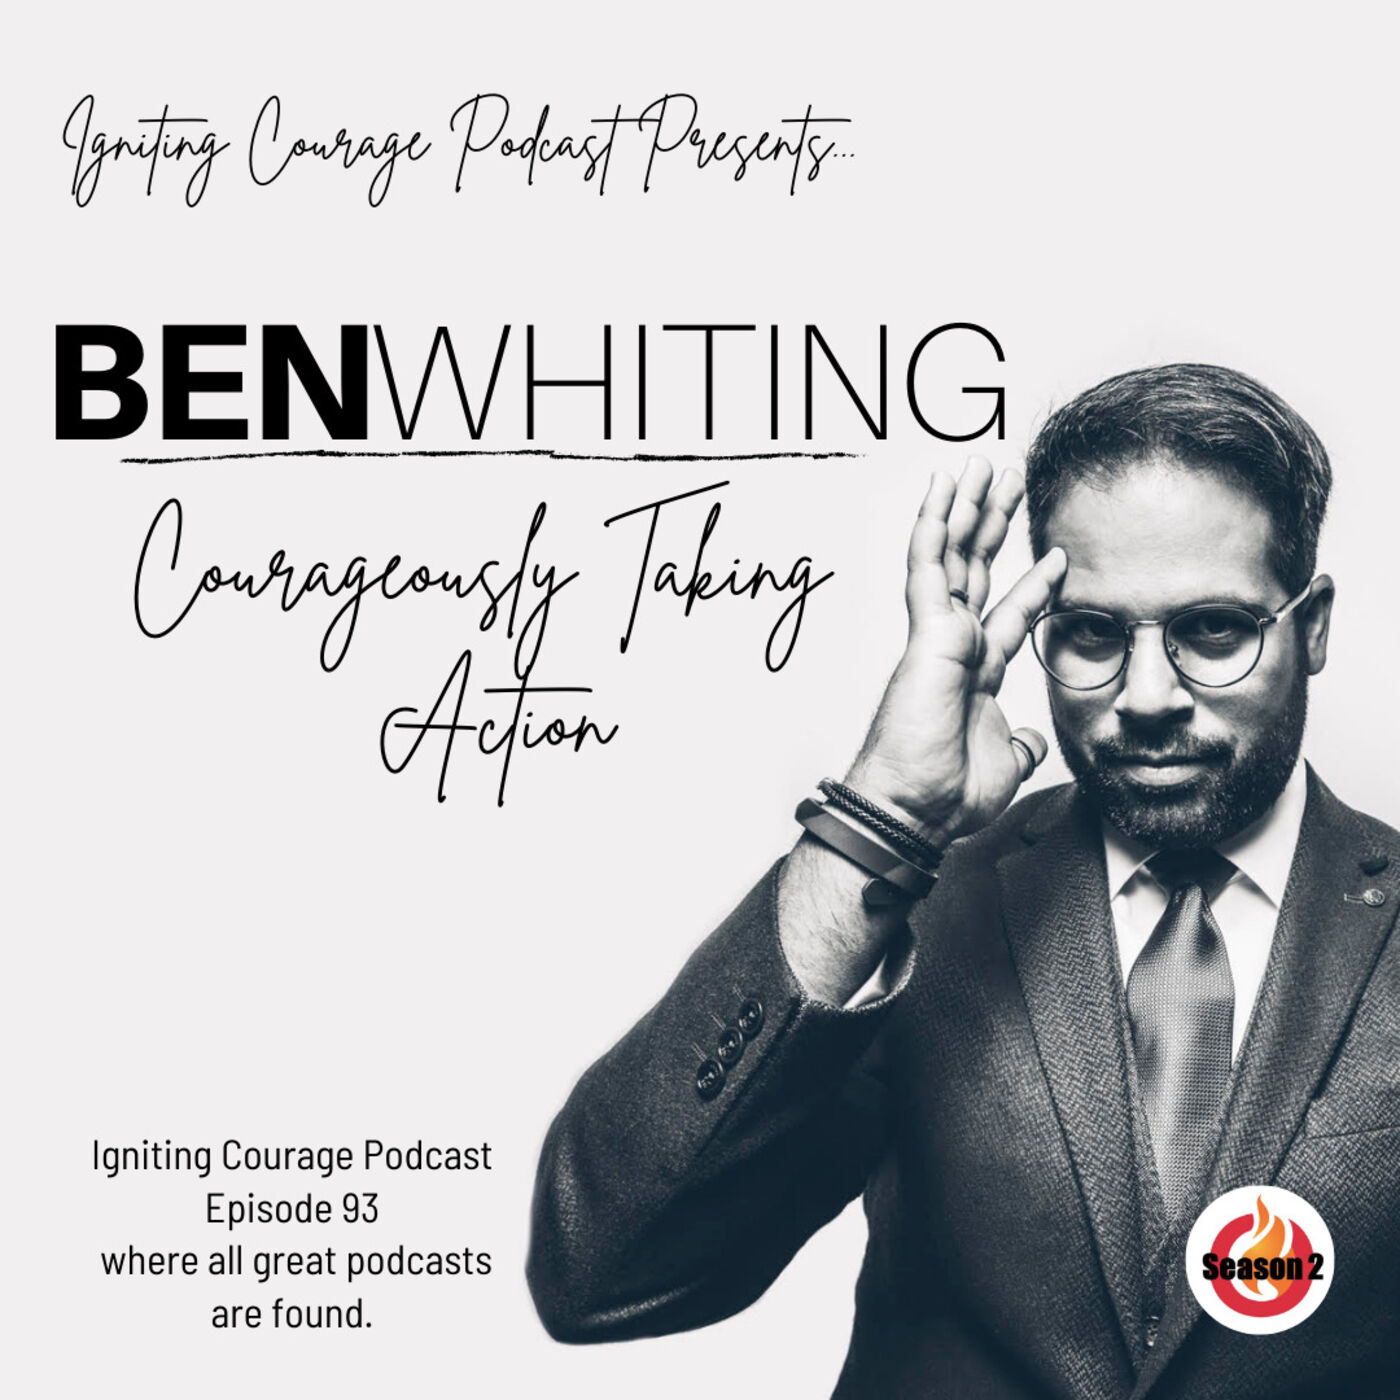 IGNITING COURAGE Podcast Episode 93: Ben Whiting, Courageously Taking Action